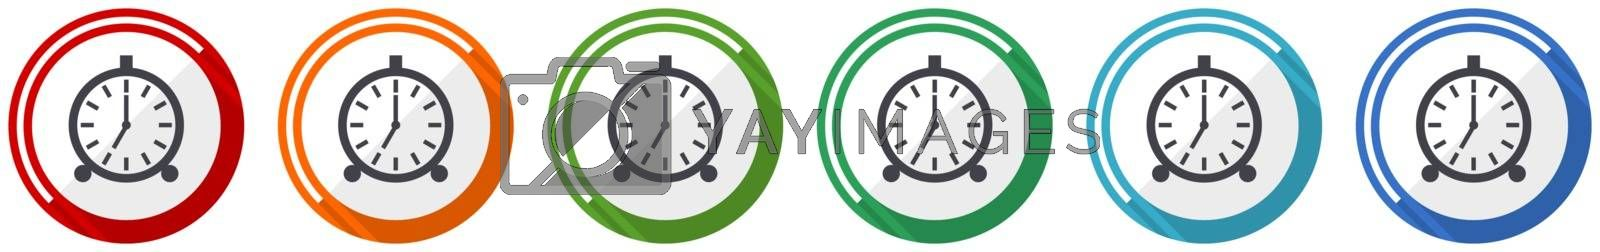 Alarm icon set, flat design vector illustration in 6 colors options for webdesign and mobile applications